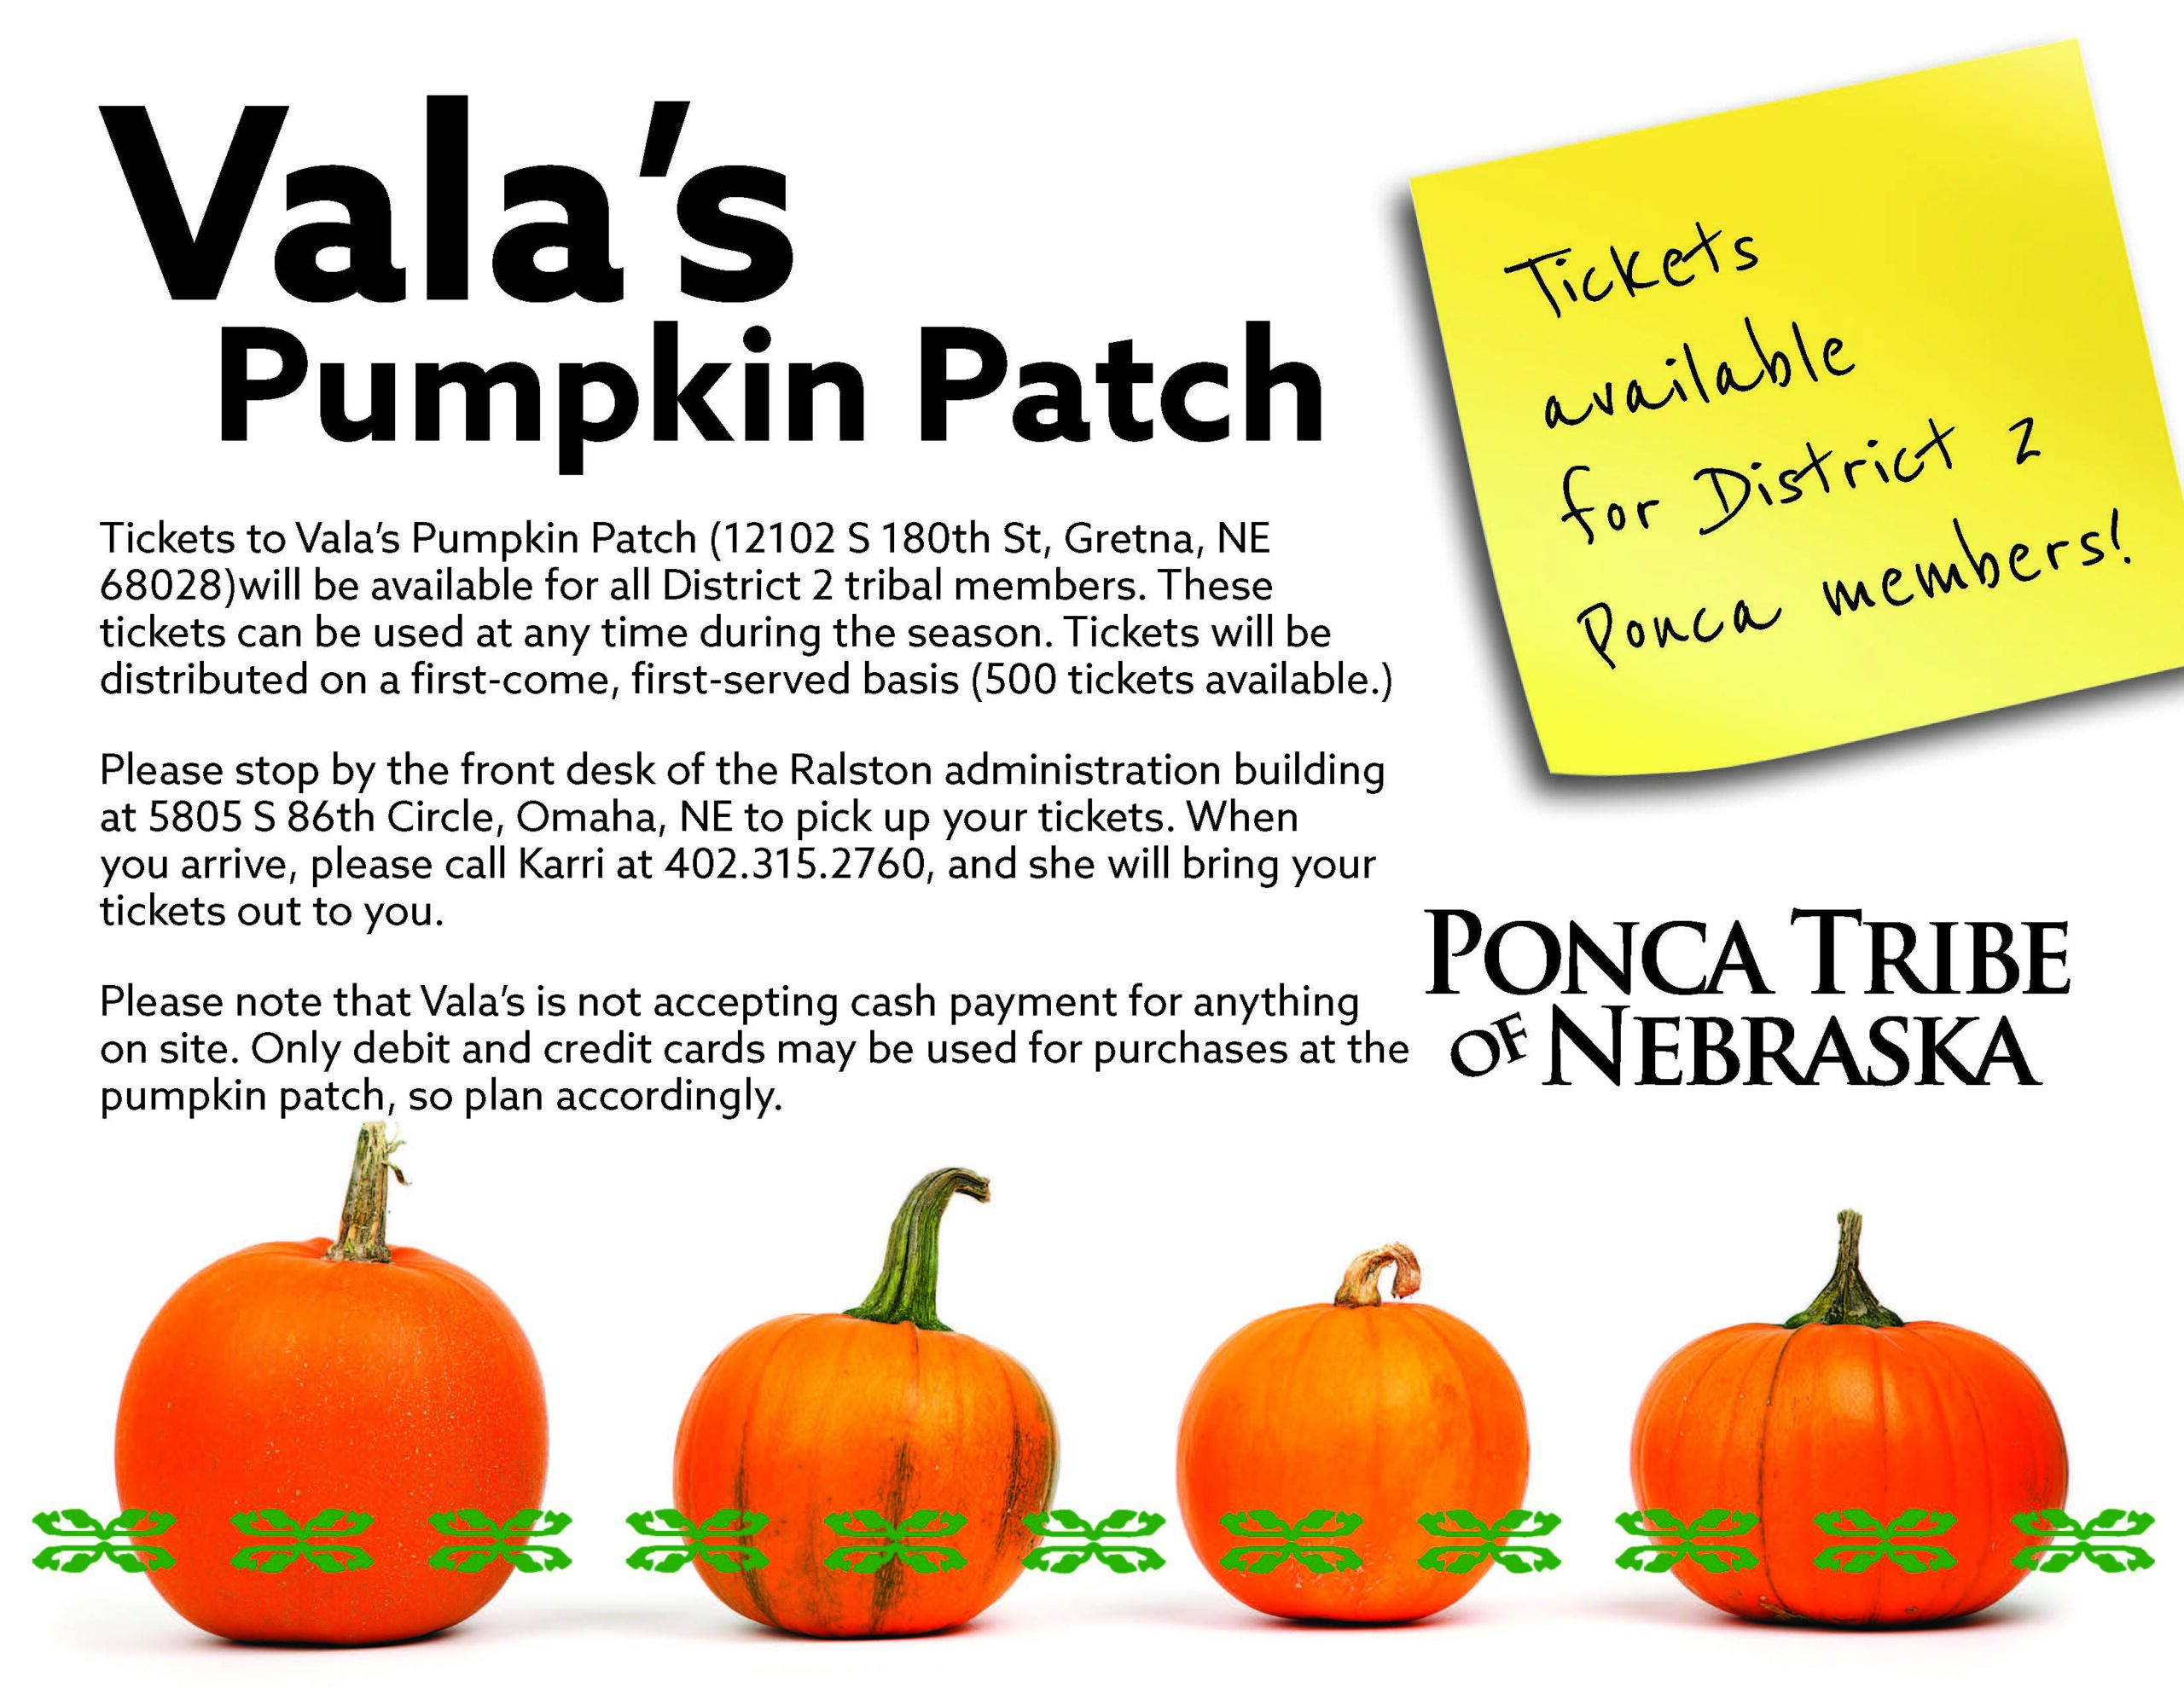 District 2 Members: Vala's Pumpkin Patch Tickets Available